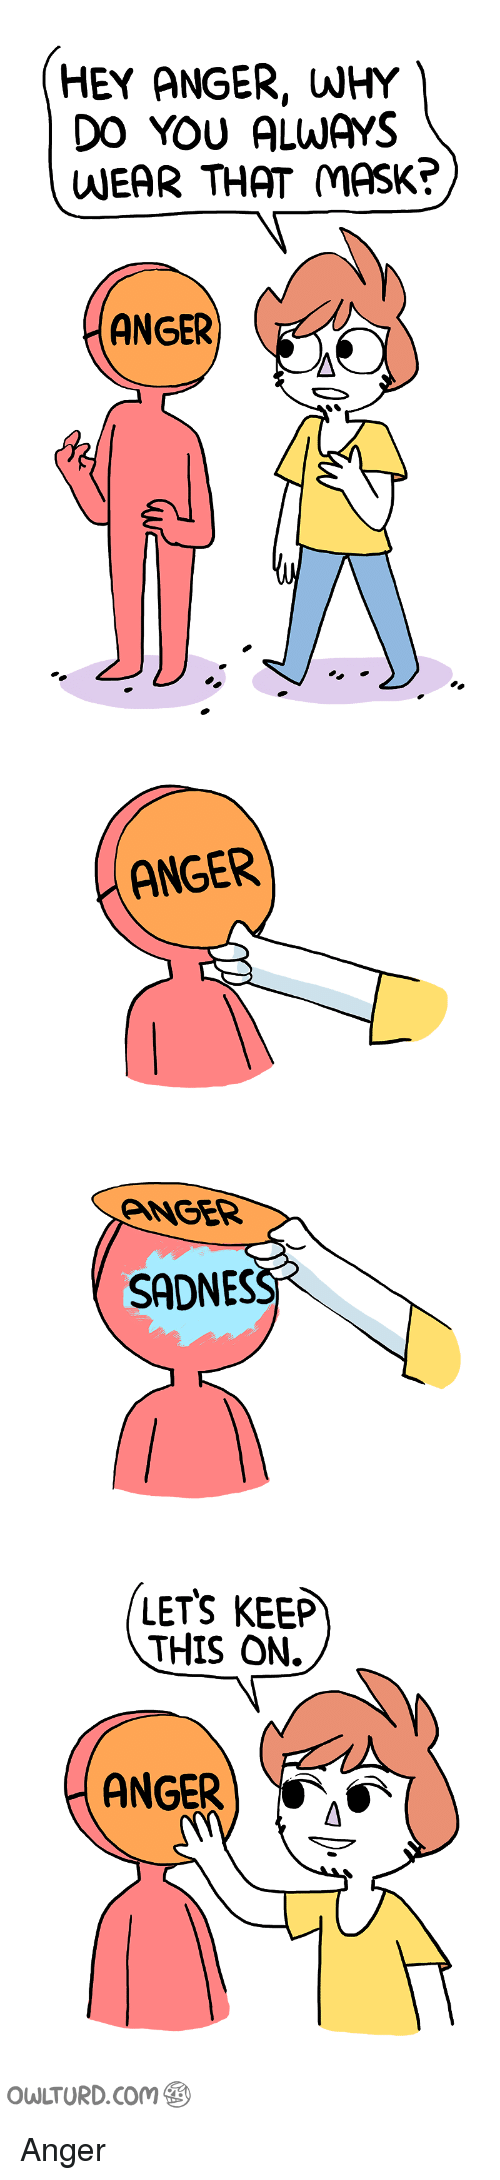 Im 14 & This Is Deep: HEY ANGER, WHY  DO YOU ALWAYS  WEAR THAT MASK?  ANGER  ANGER  ANGER  SADNES  LETS KEEP  THIS ON.  ANGER  AS  owLTURD com Anger